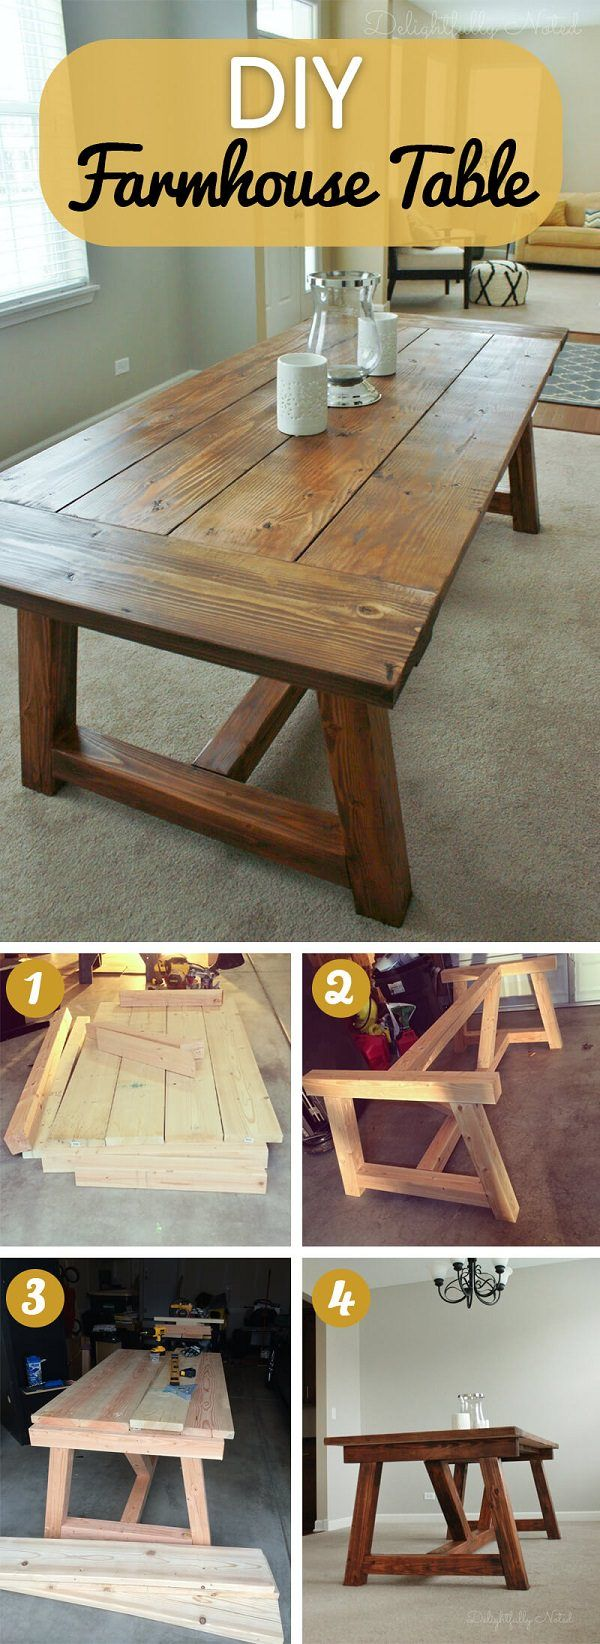 17 Diy Rustic Home Decor Ideas For Living Room: 17 Rustic DIY Farmhouse Table Ideas To